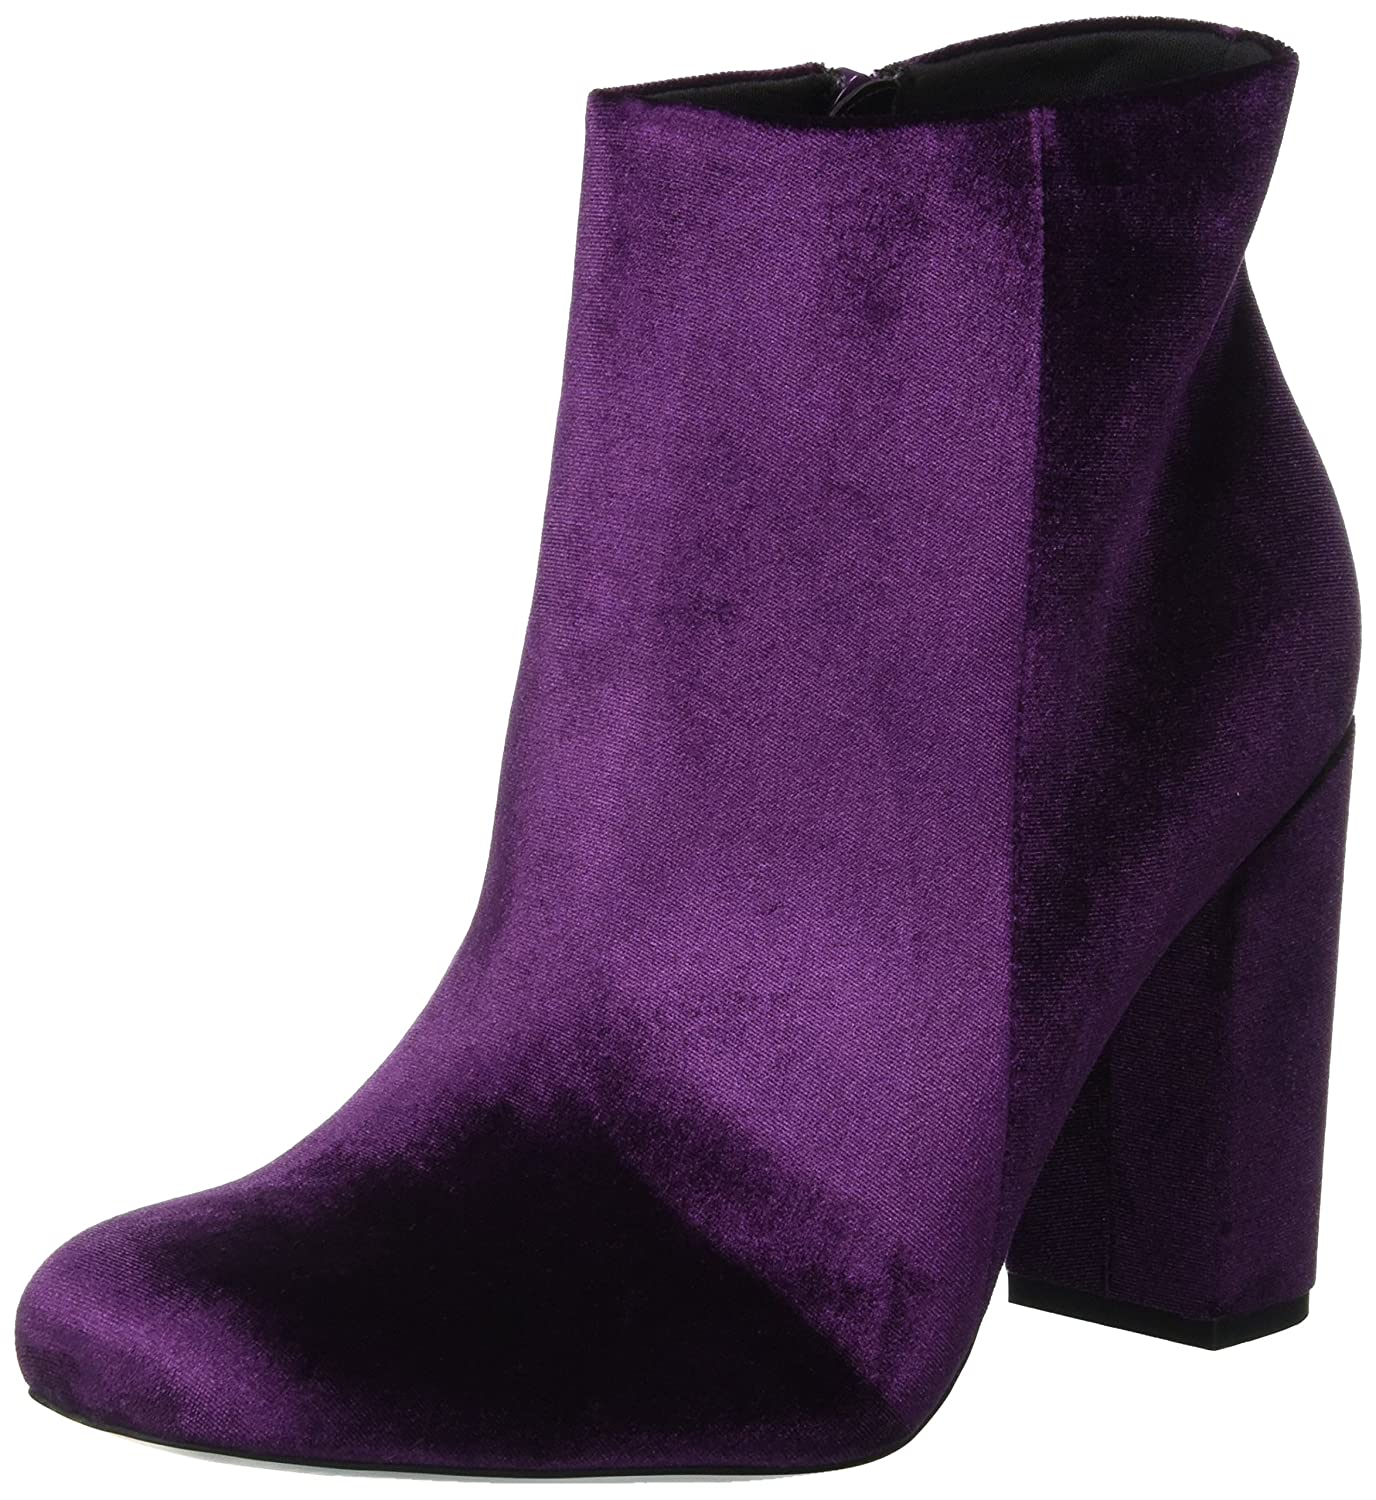 Steve Madden Pacers, Pacers, Pacers, Stivaletti Donna e0b7b8